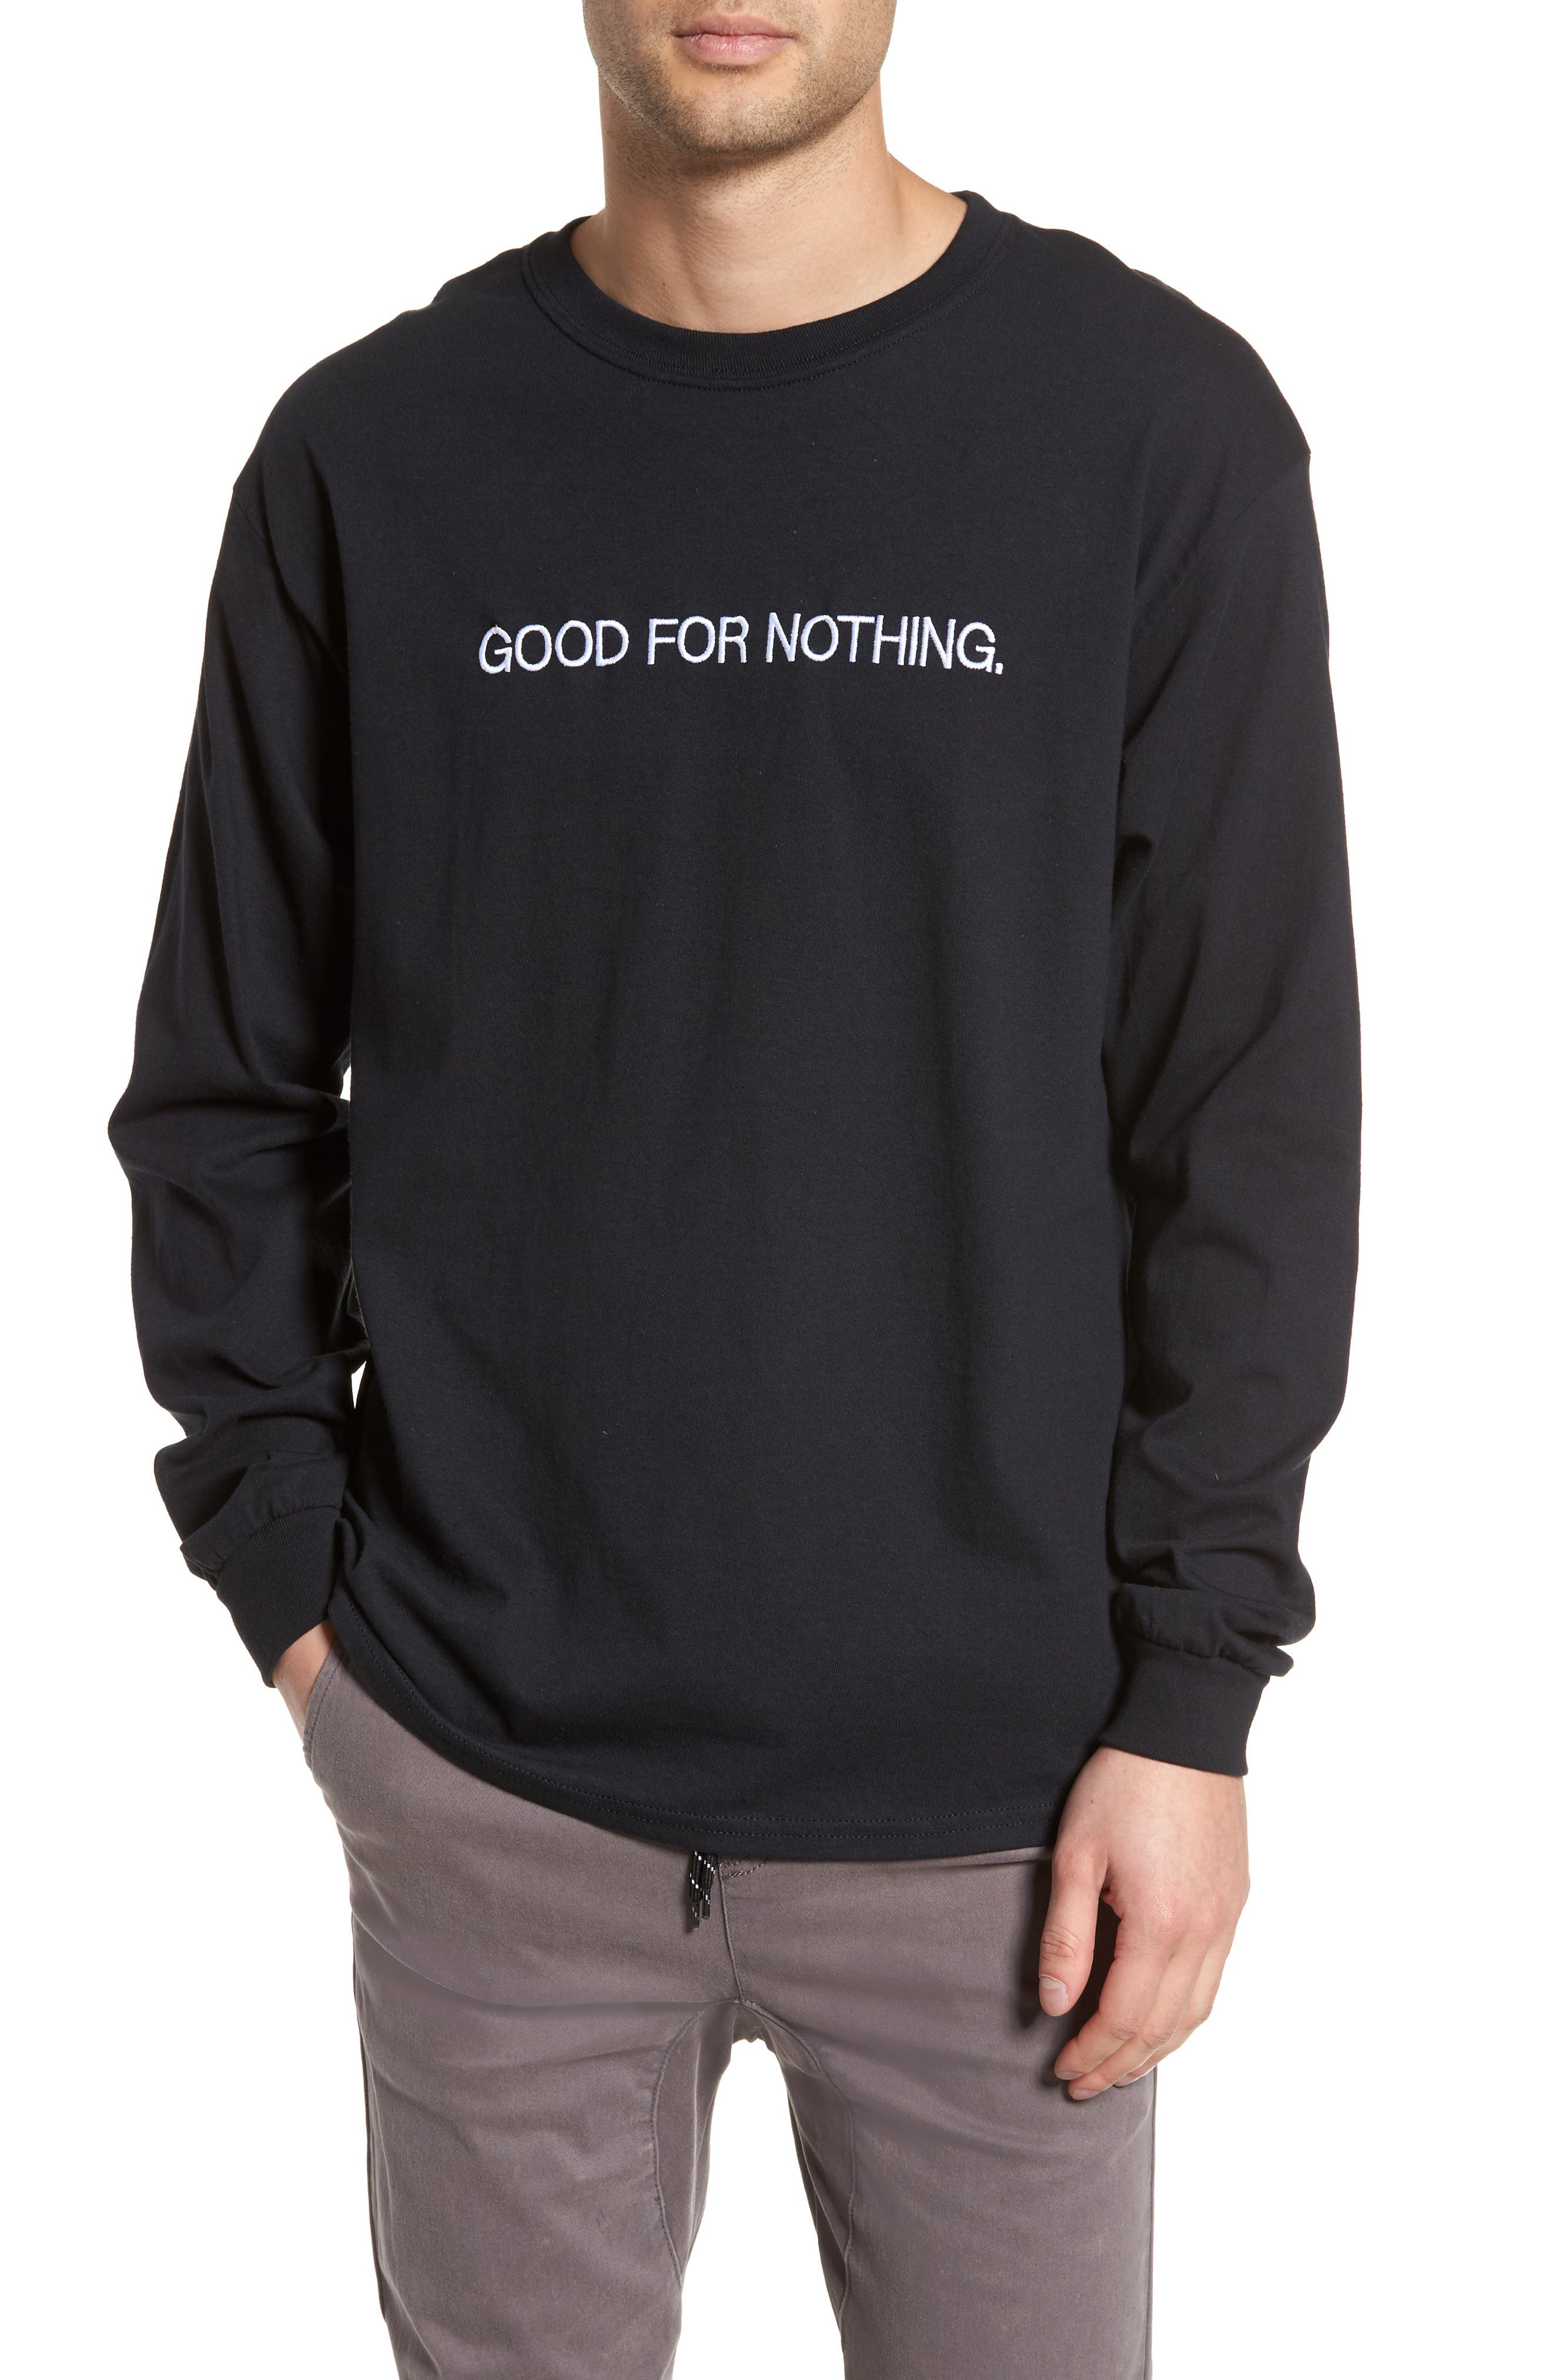 Good for Nothing Embroidered T-Shirt,                             Main thumbnail 1, color,                             001